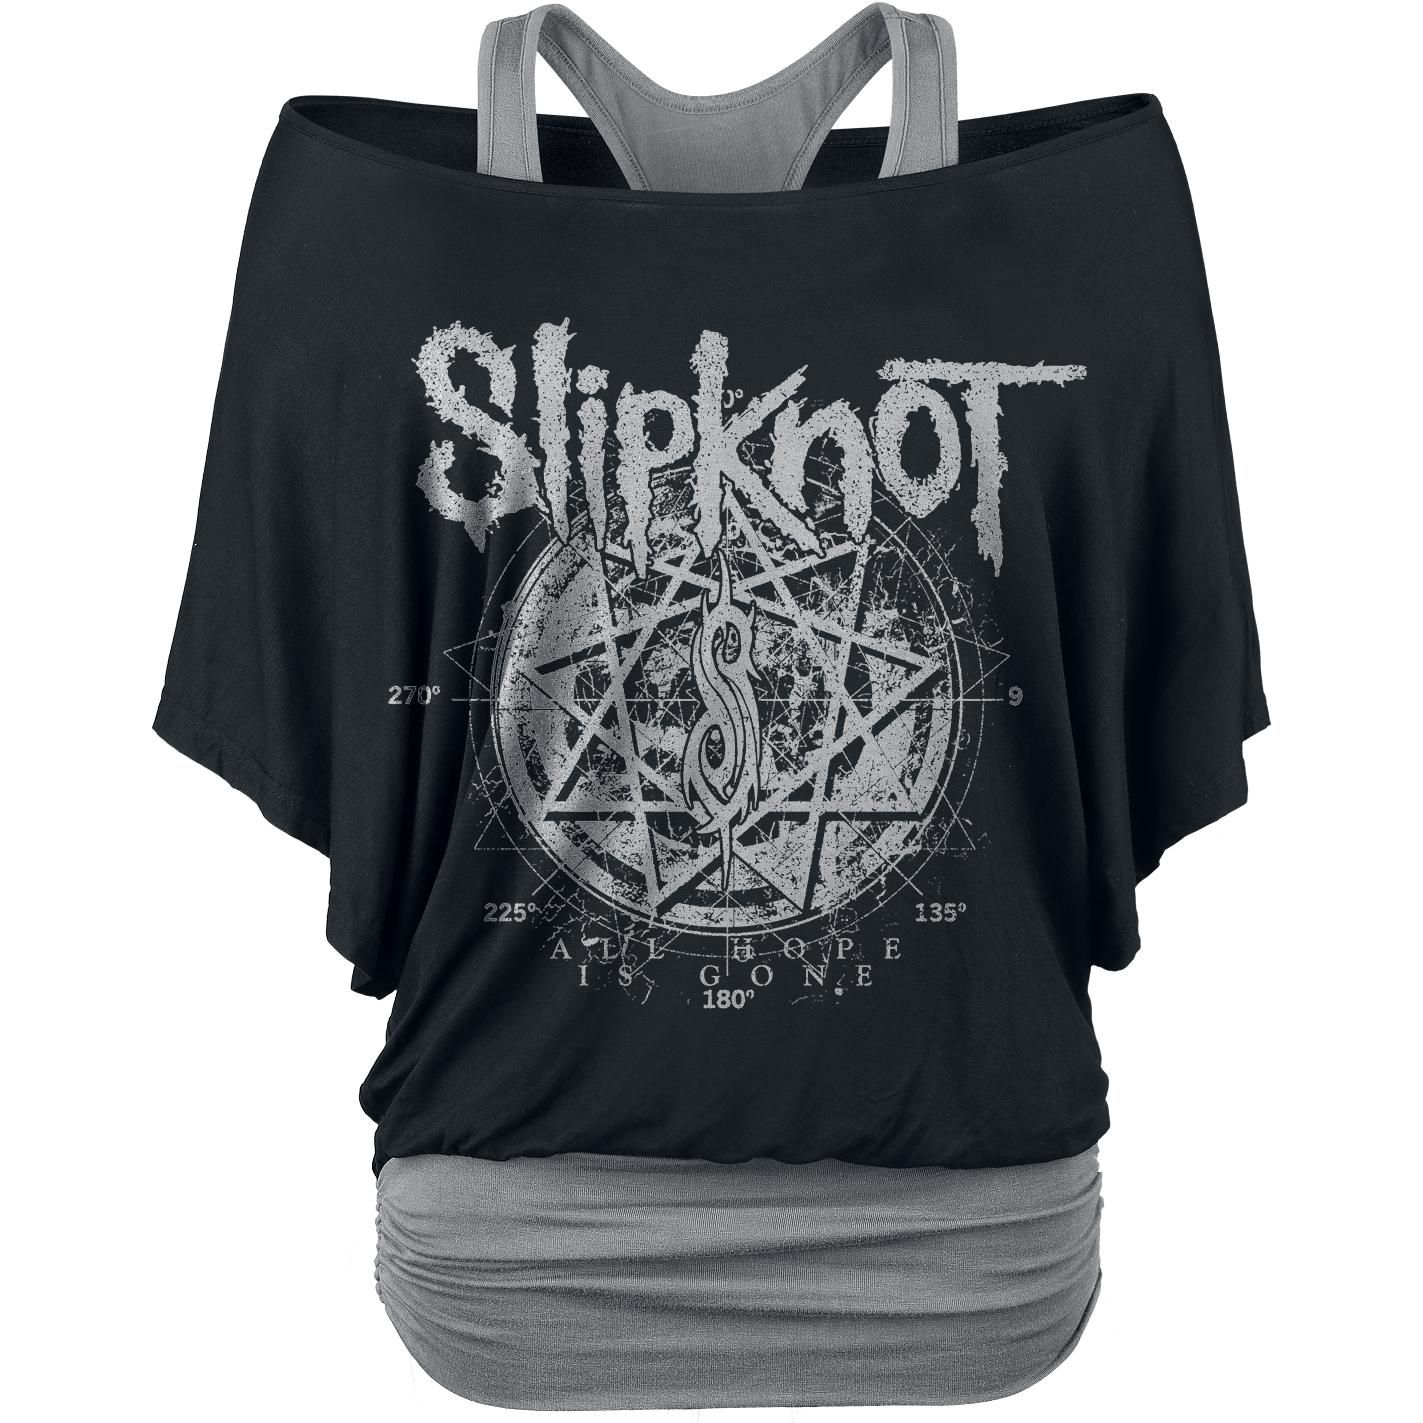 Slipknot t shirt women star symbol black grey emp tops slipknot star symbol girls shirt black grey s slipknot biocorpaavc Choice Image